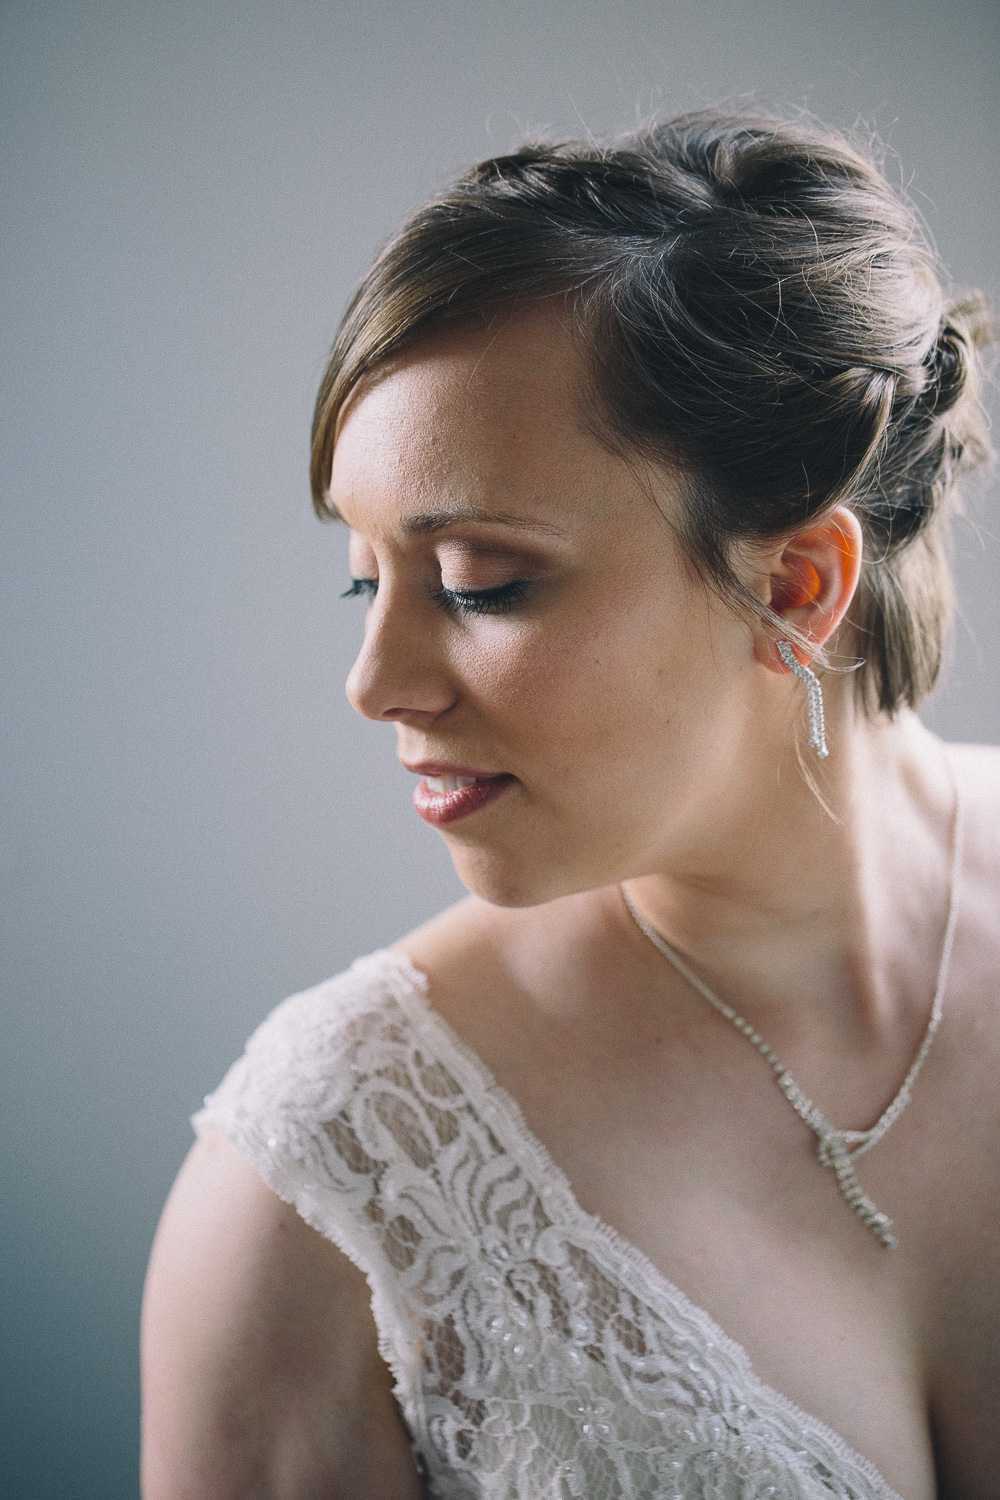 Bride with short hair looks over her shoulder to show the lace detail of her wedding gown and natural makeup